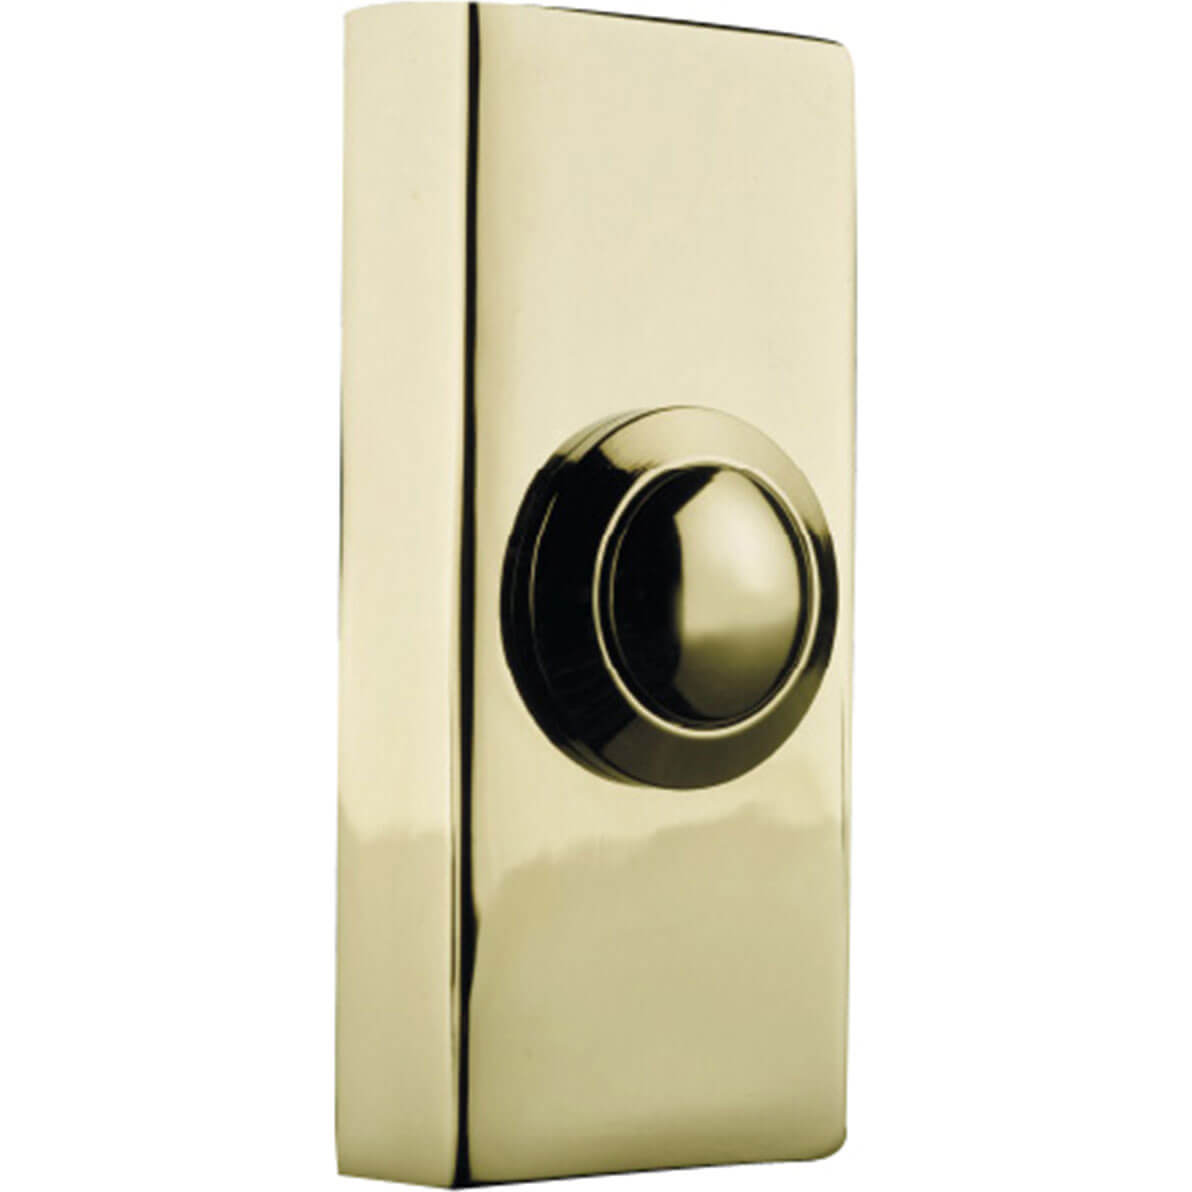 Image of Byron Wired Door Bell Push Brass